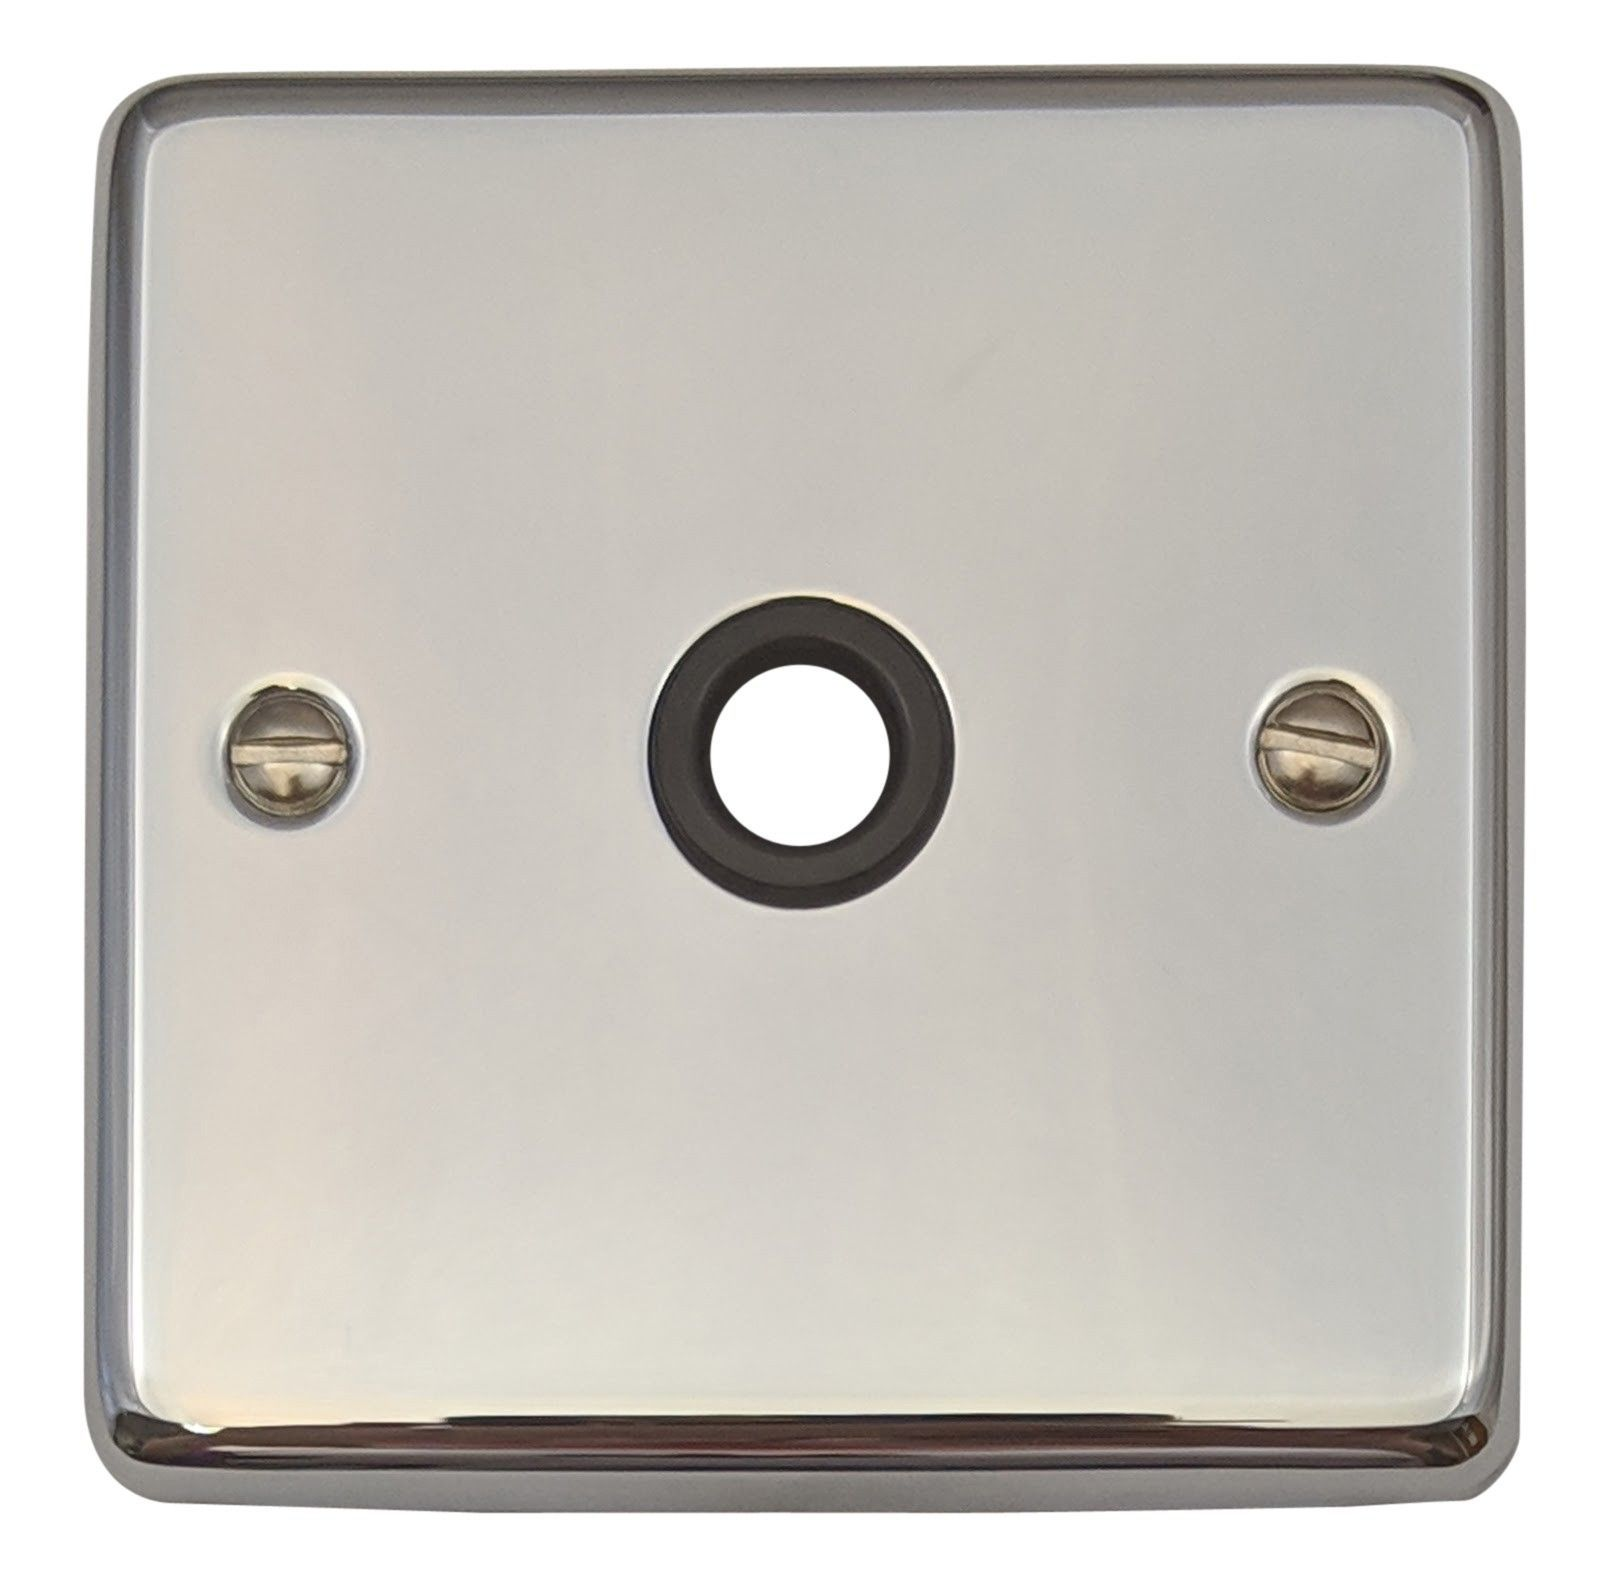 G&H CC79B Standard Plate Polished Chrome 1 Gang Flex Outlet Plate